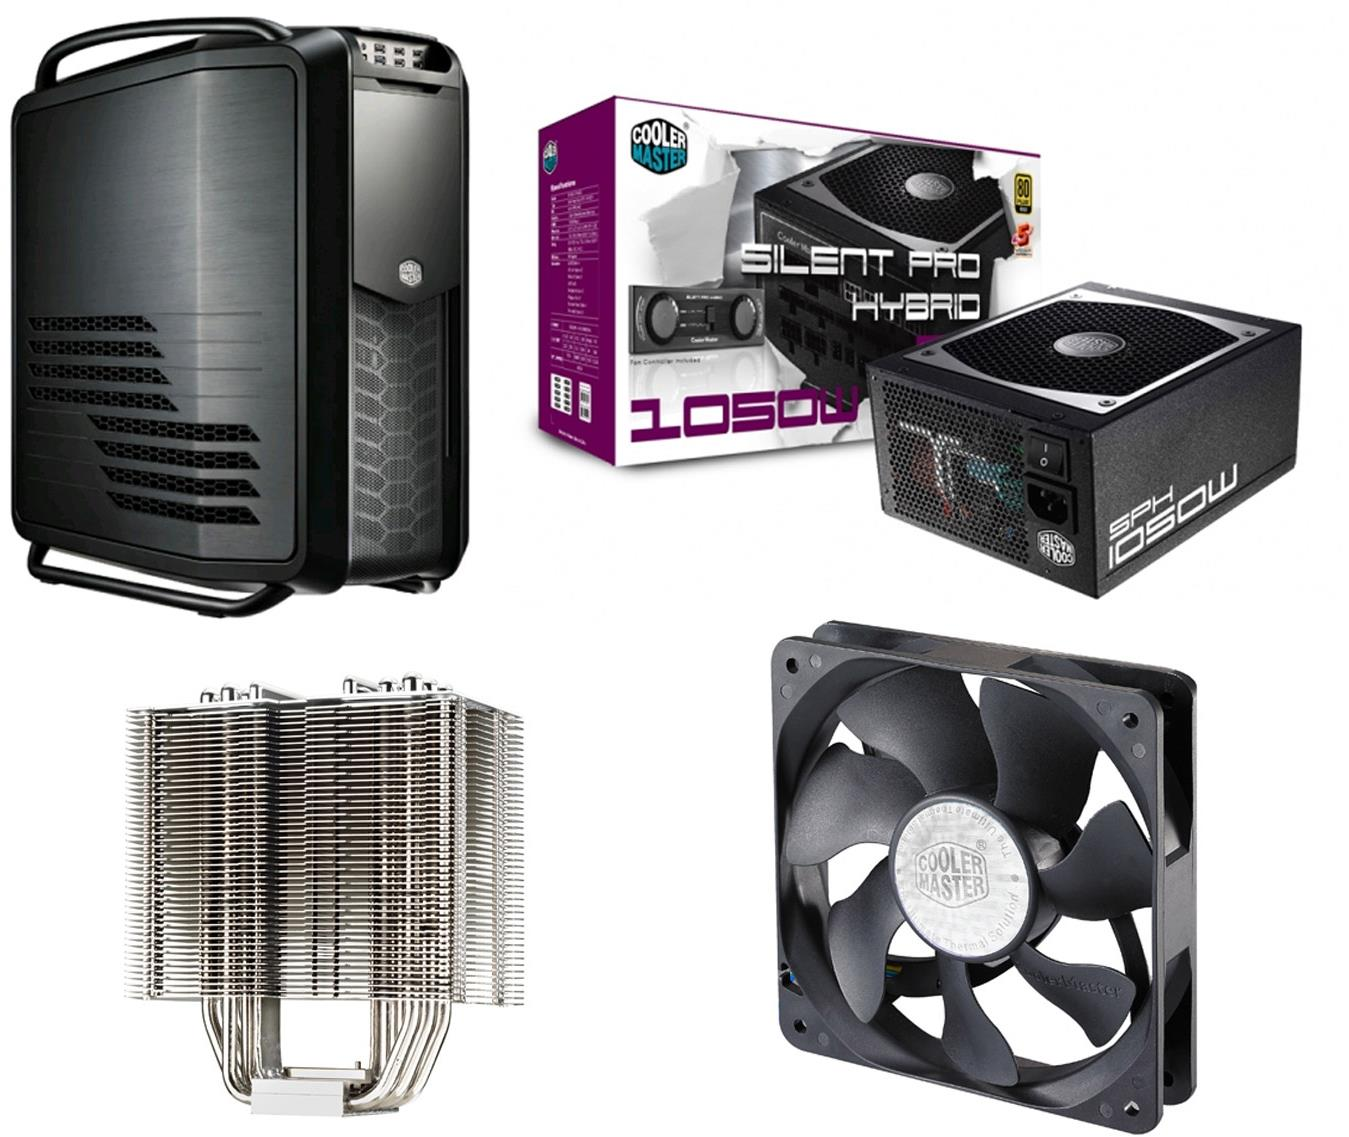 PSU Case Bundles